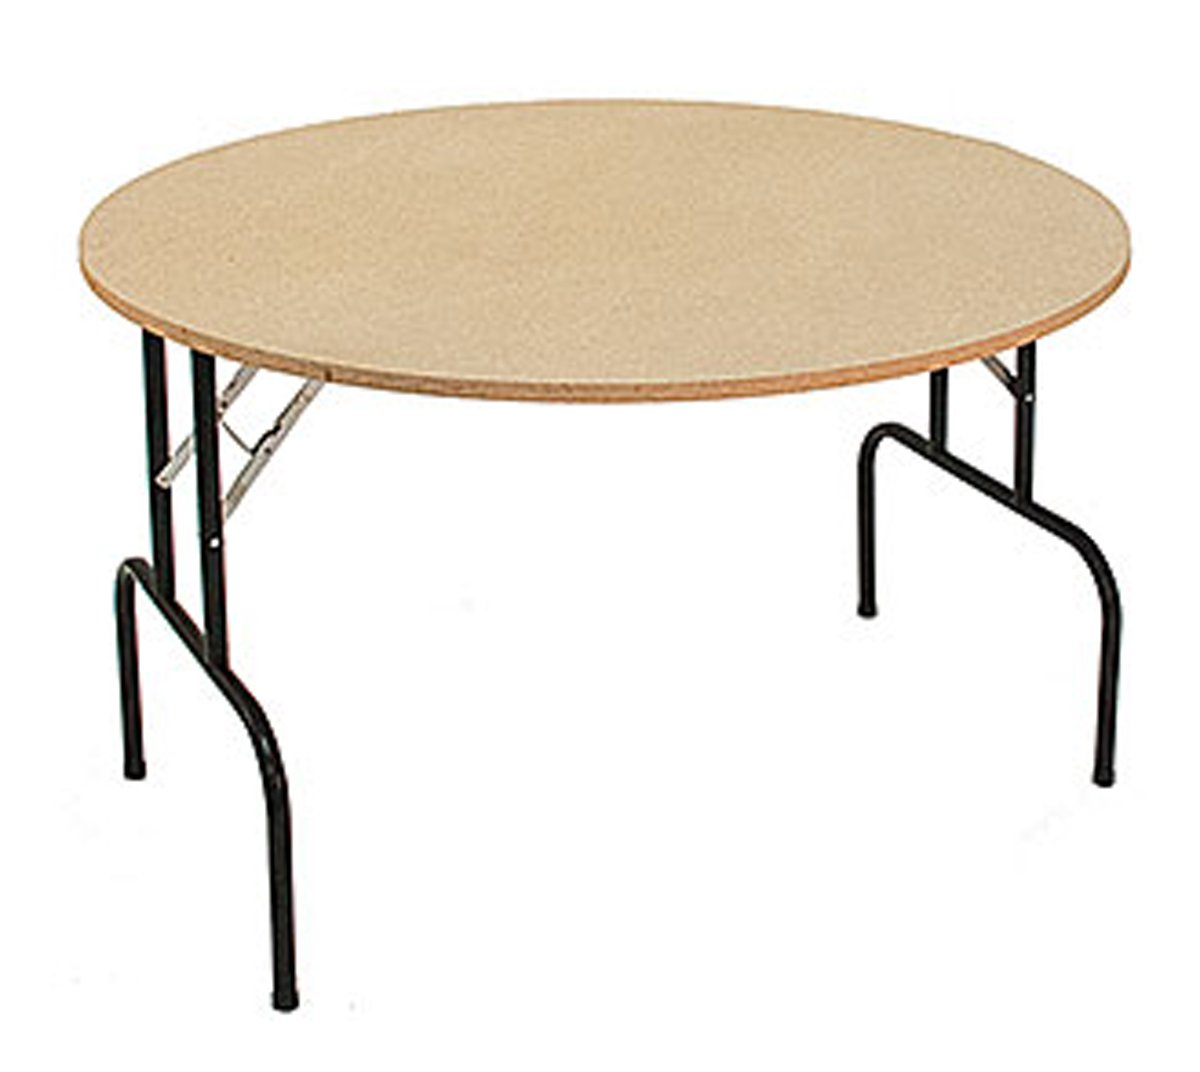 Round Folding Furniture Banquet Event Table Retail Display Store Fixture 48'' Lot of 2 New